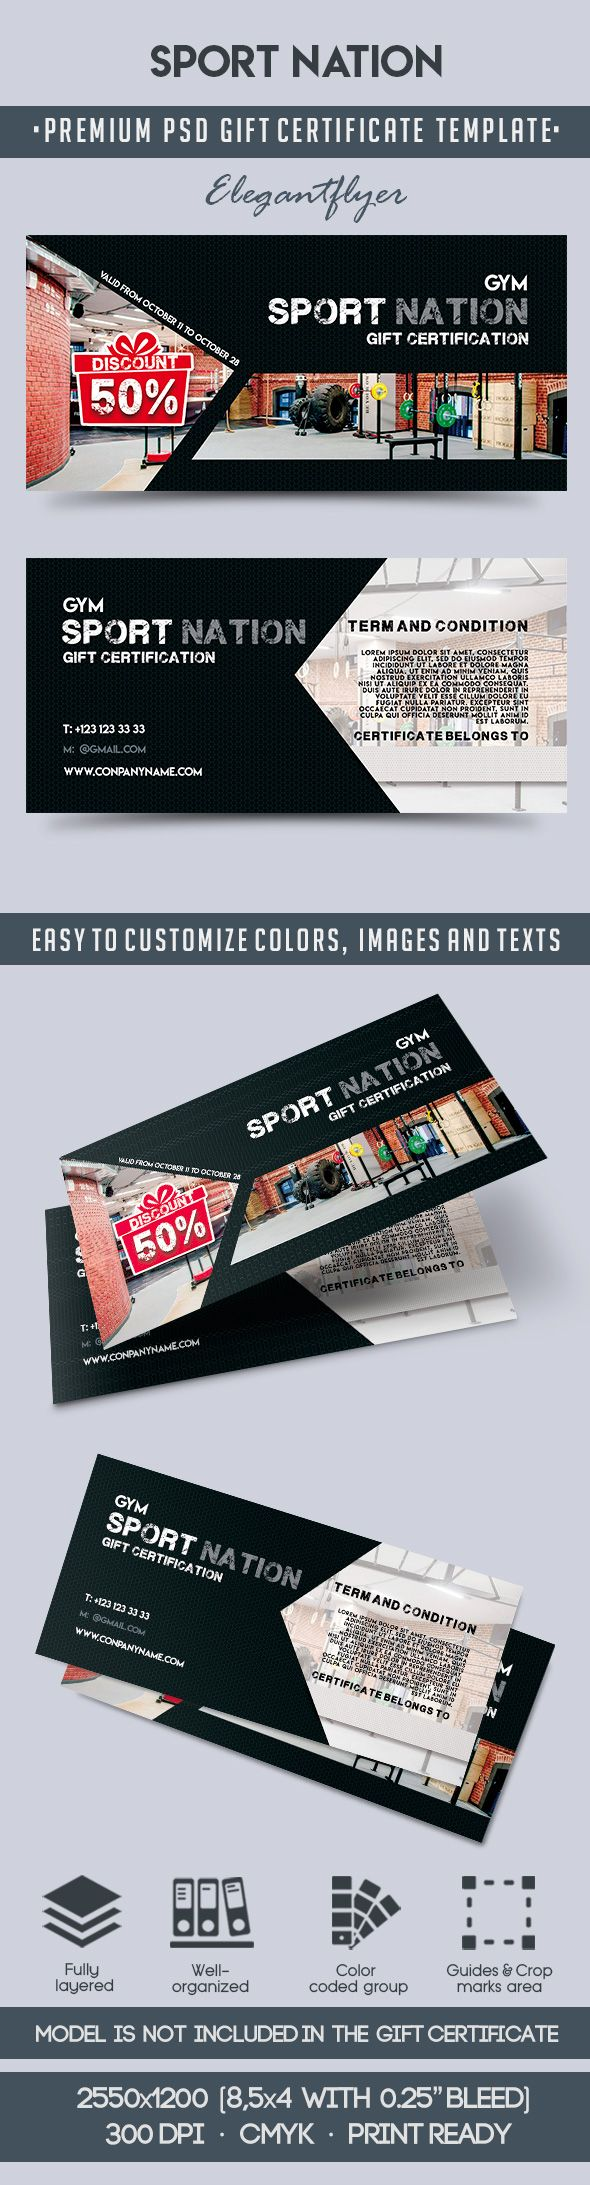 Sport Nation – Premium Gift Certificate PSD Template